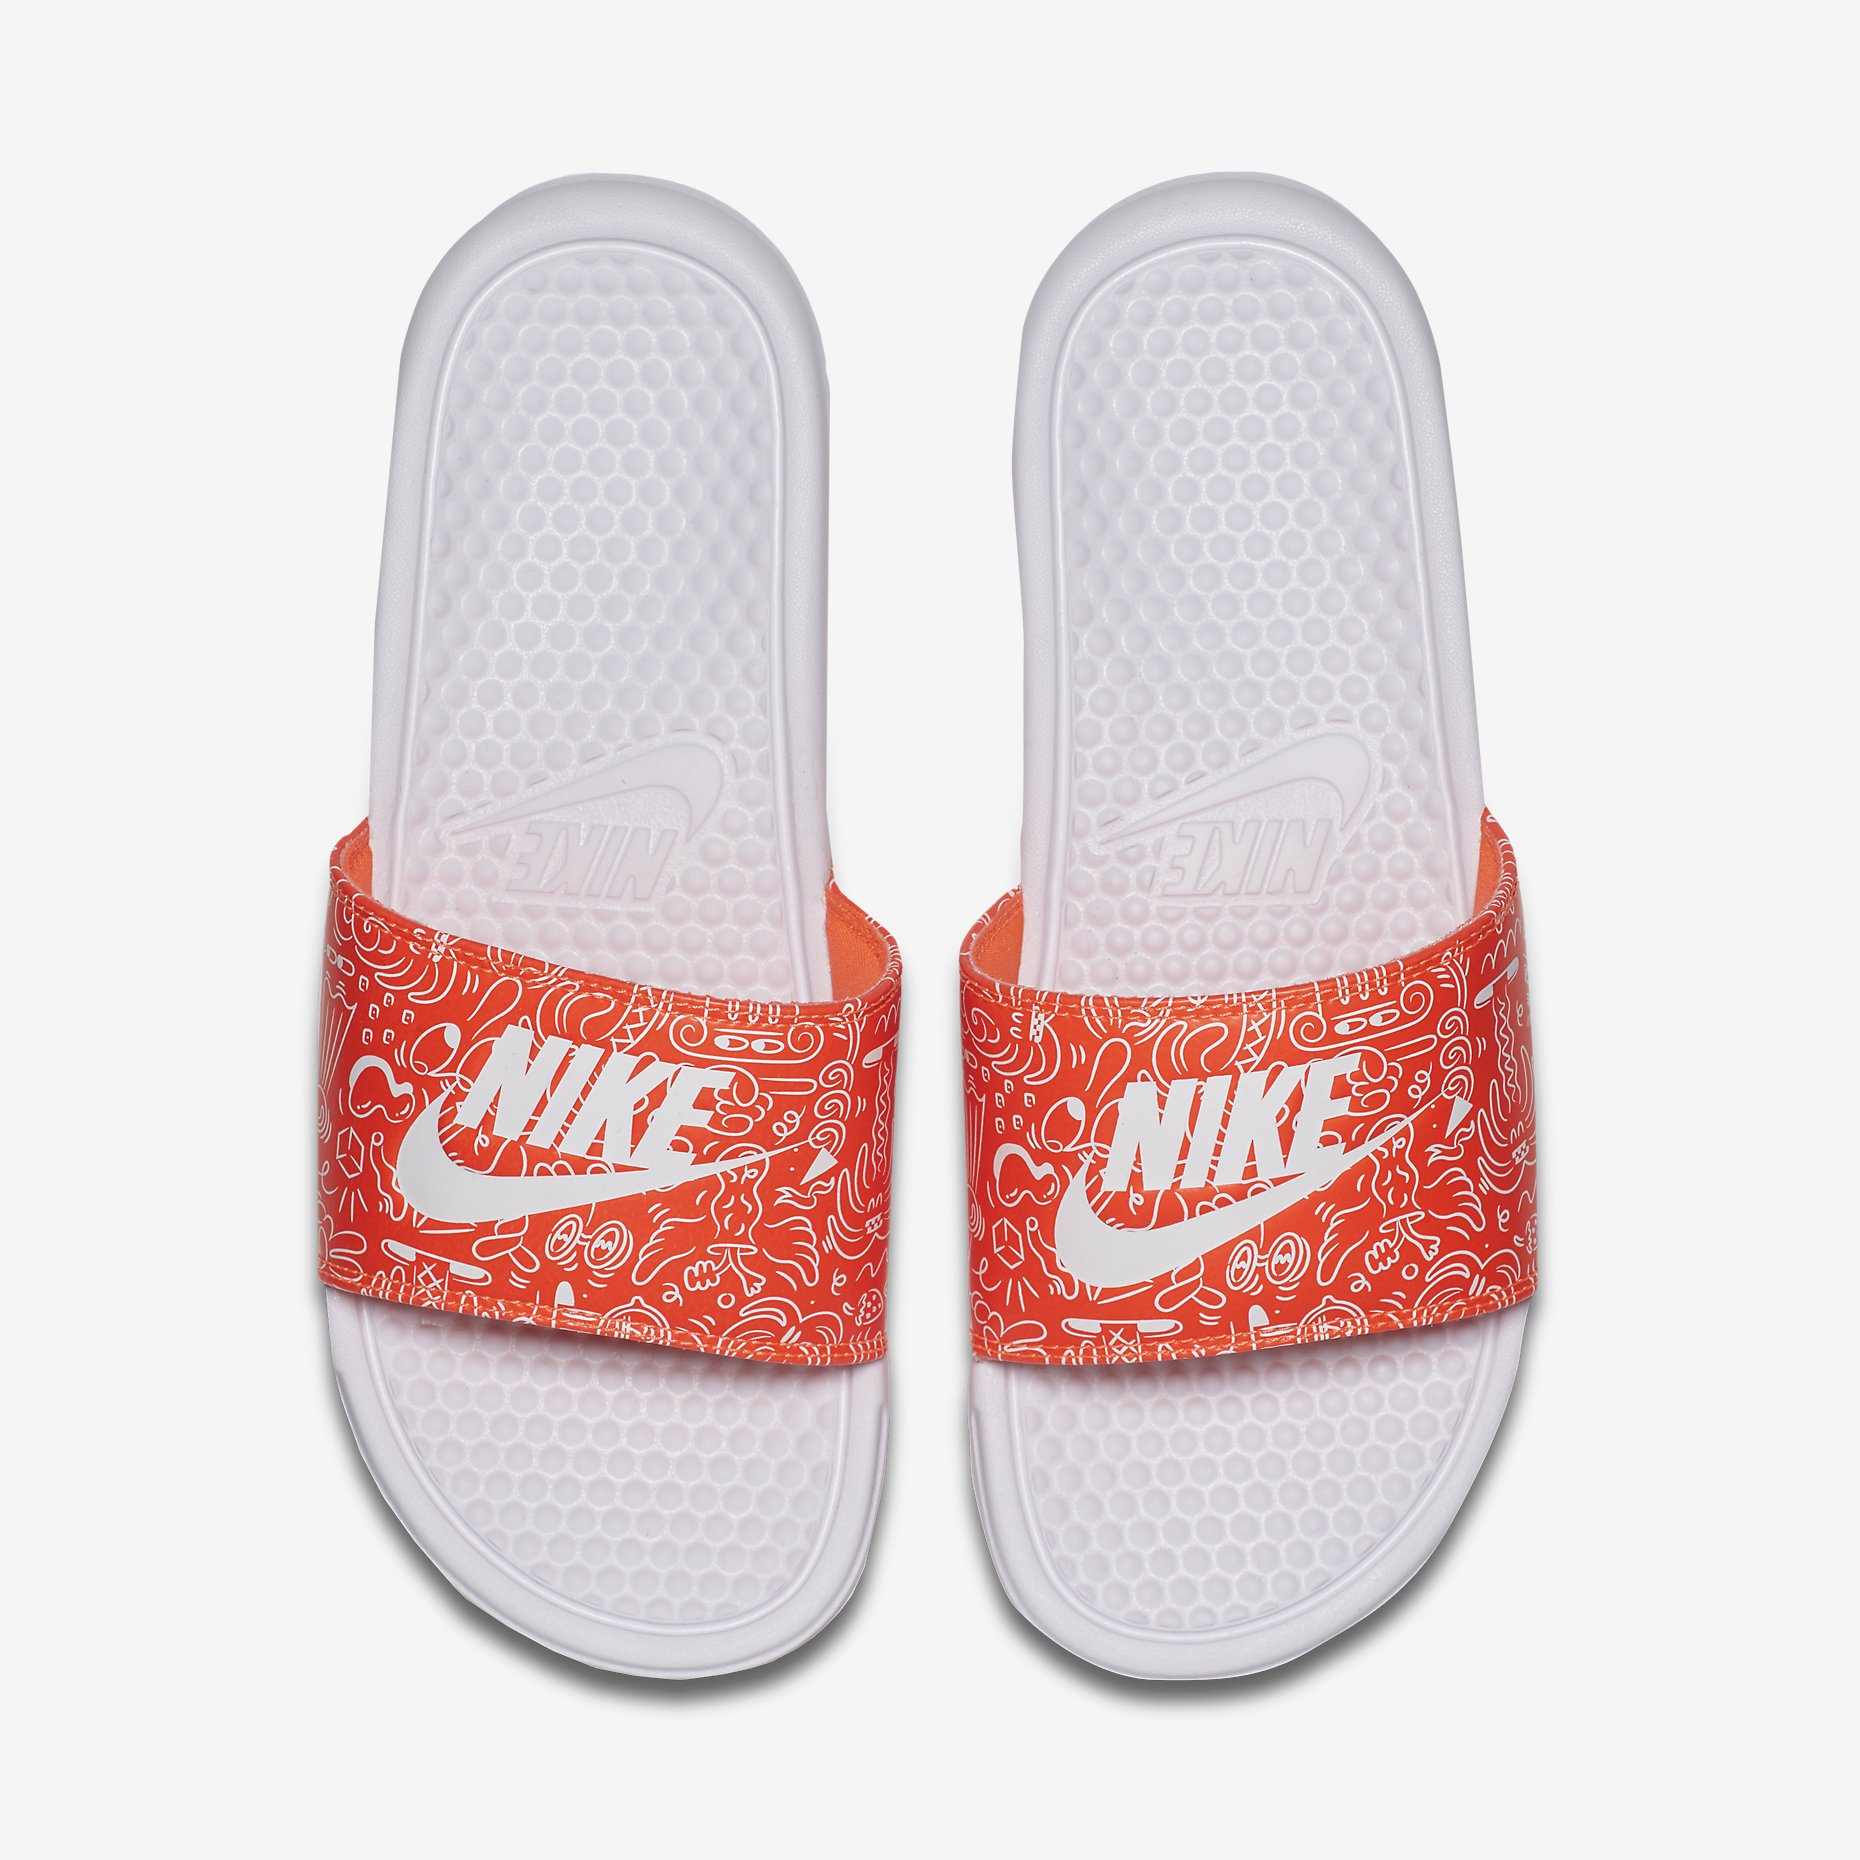 30 Under $30 // Lady Gray // Nike sandals